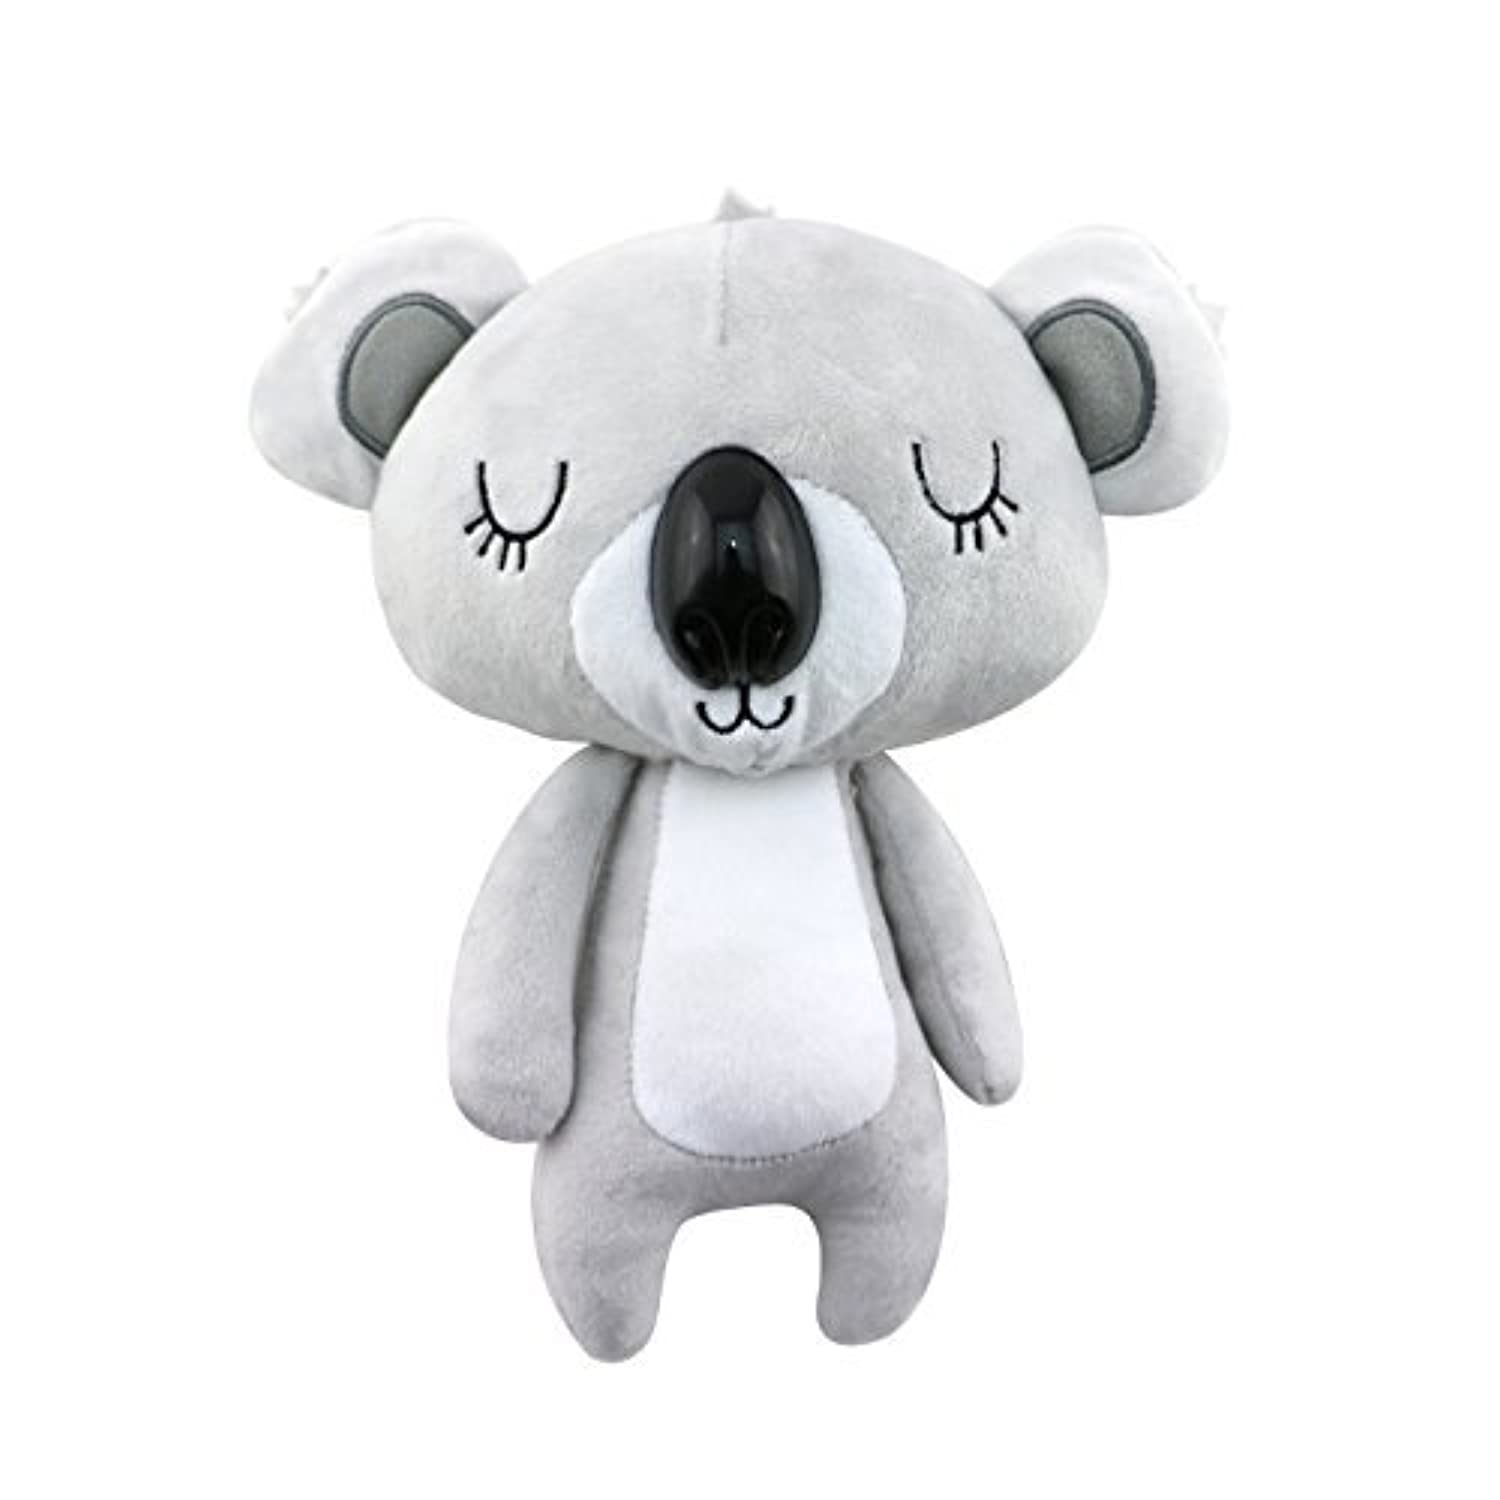 TALENTBABY Infant Baby Soft Plush Animal Wrists Rattle and Bedtime Original Best Gift Early Educational Development Toy for Boys and Girls-Koala [並行輸入品]